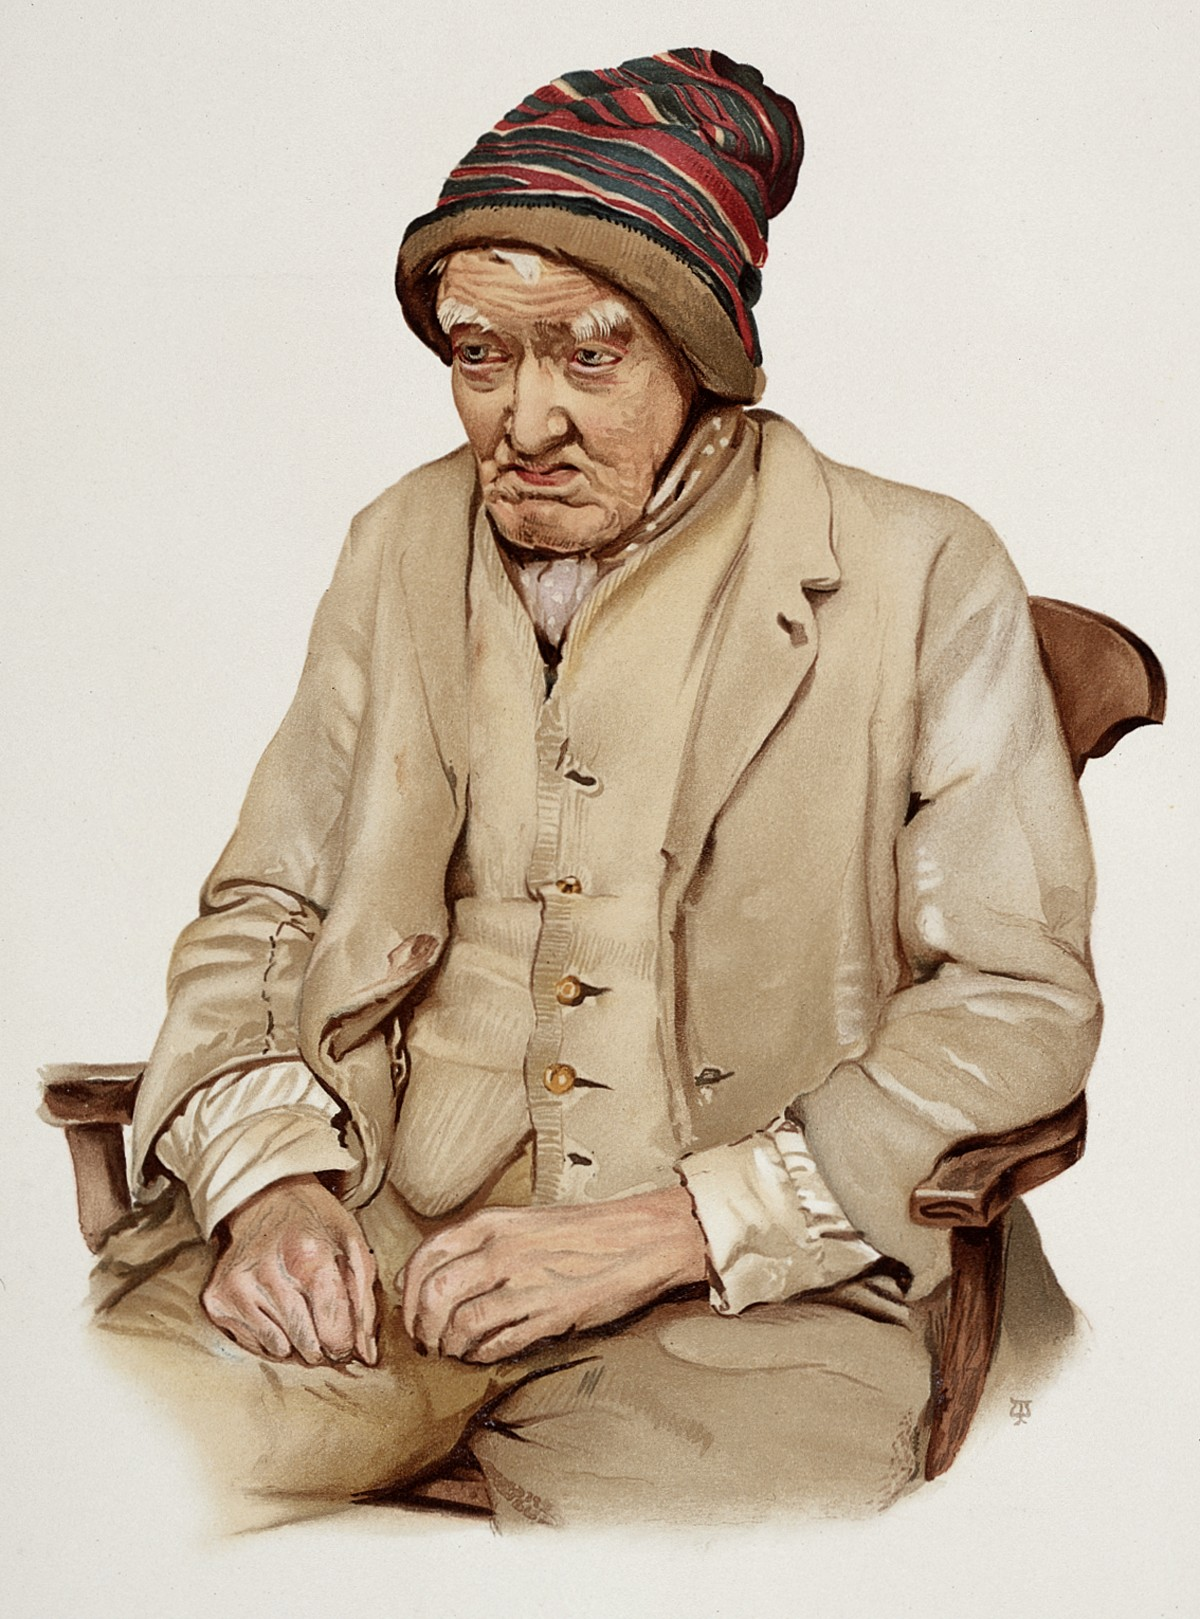 An old man diagnosed as suffering from senile dementia. Colo Wellcome L0026689